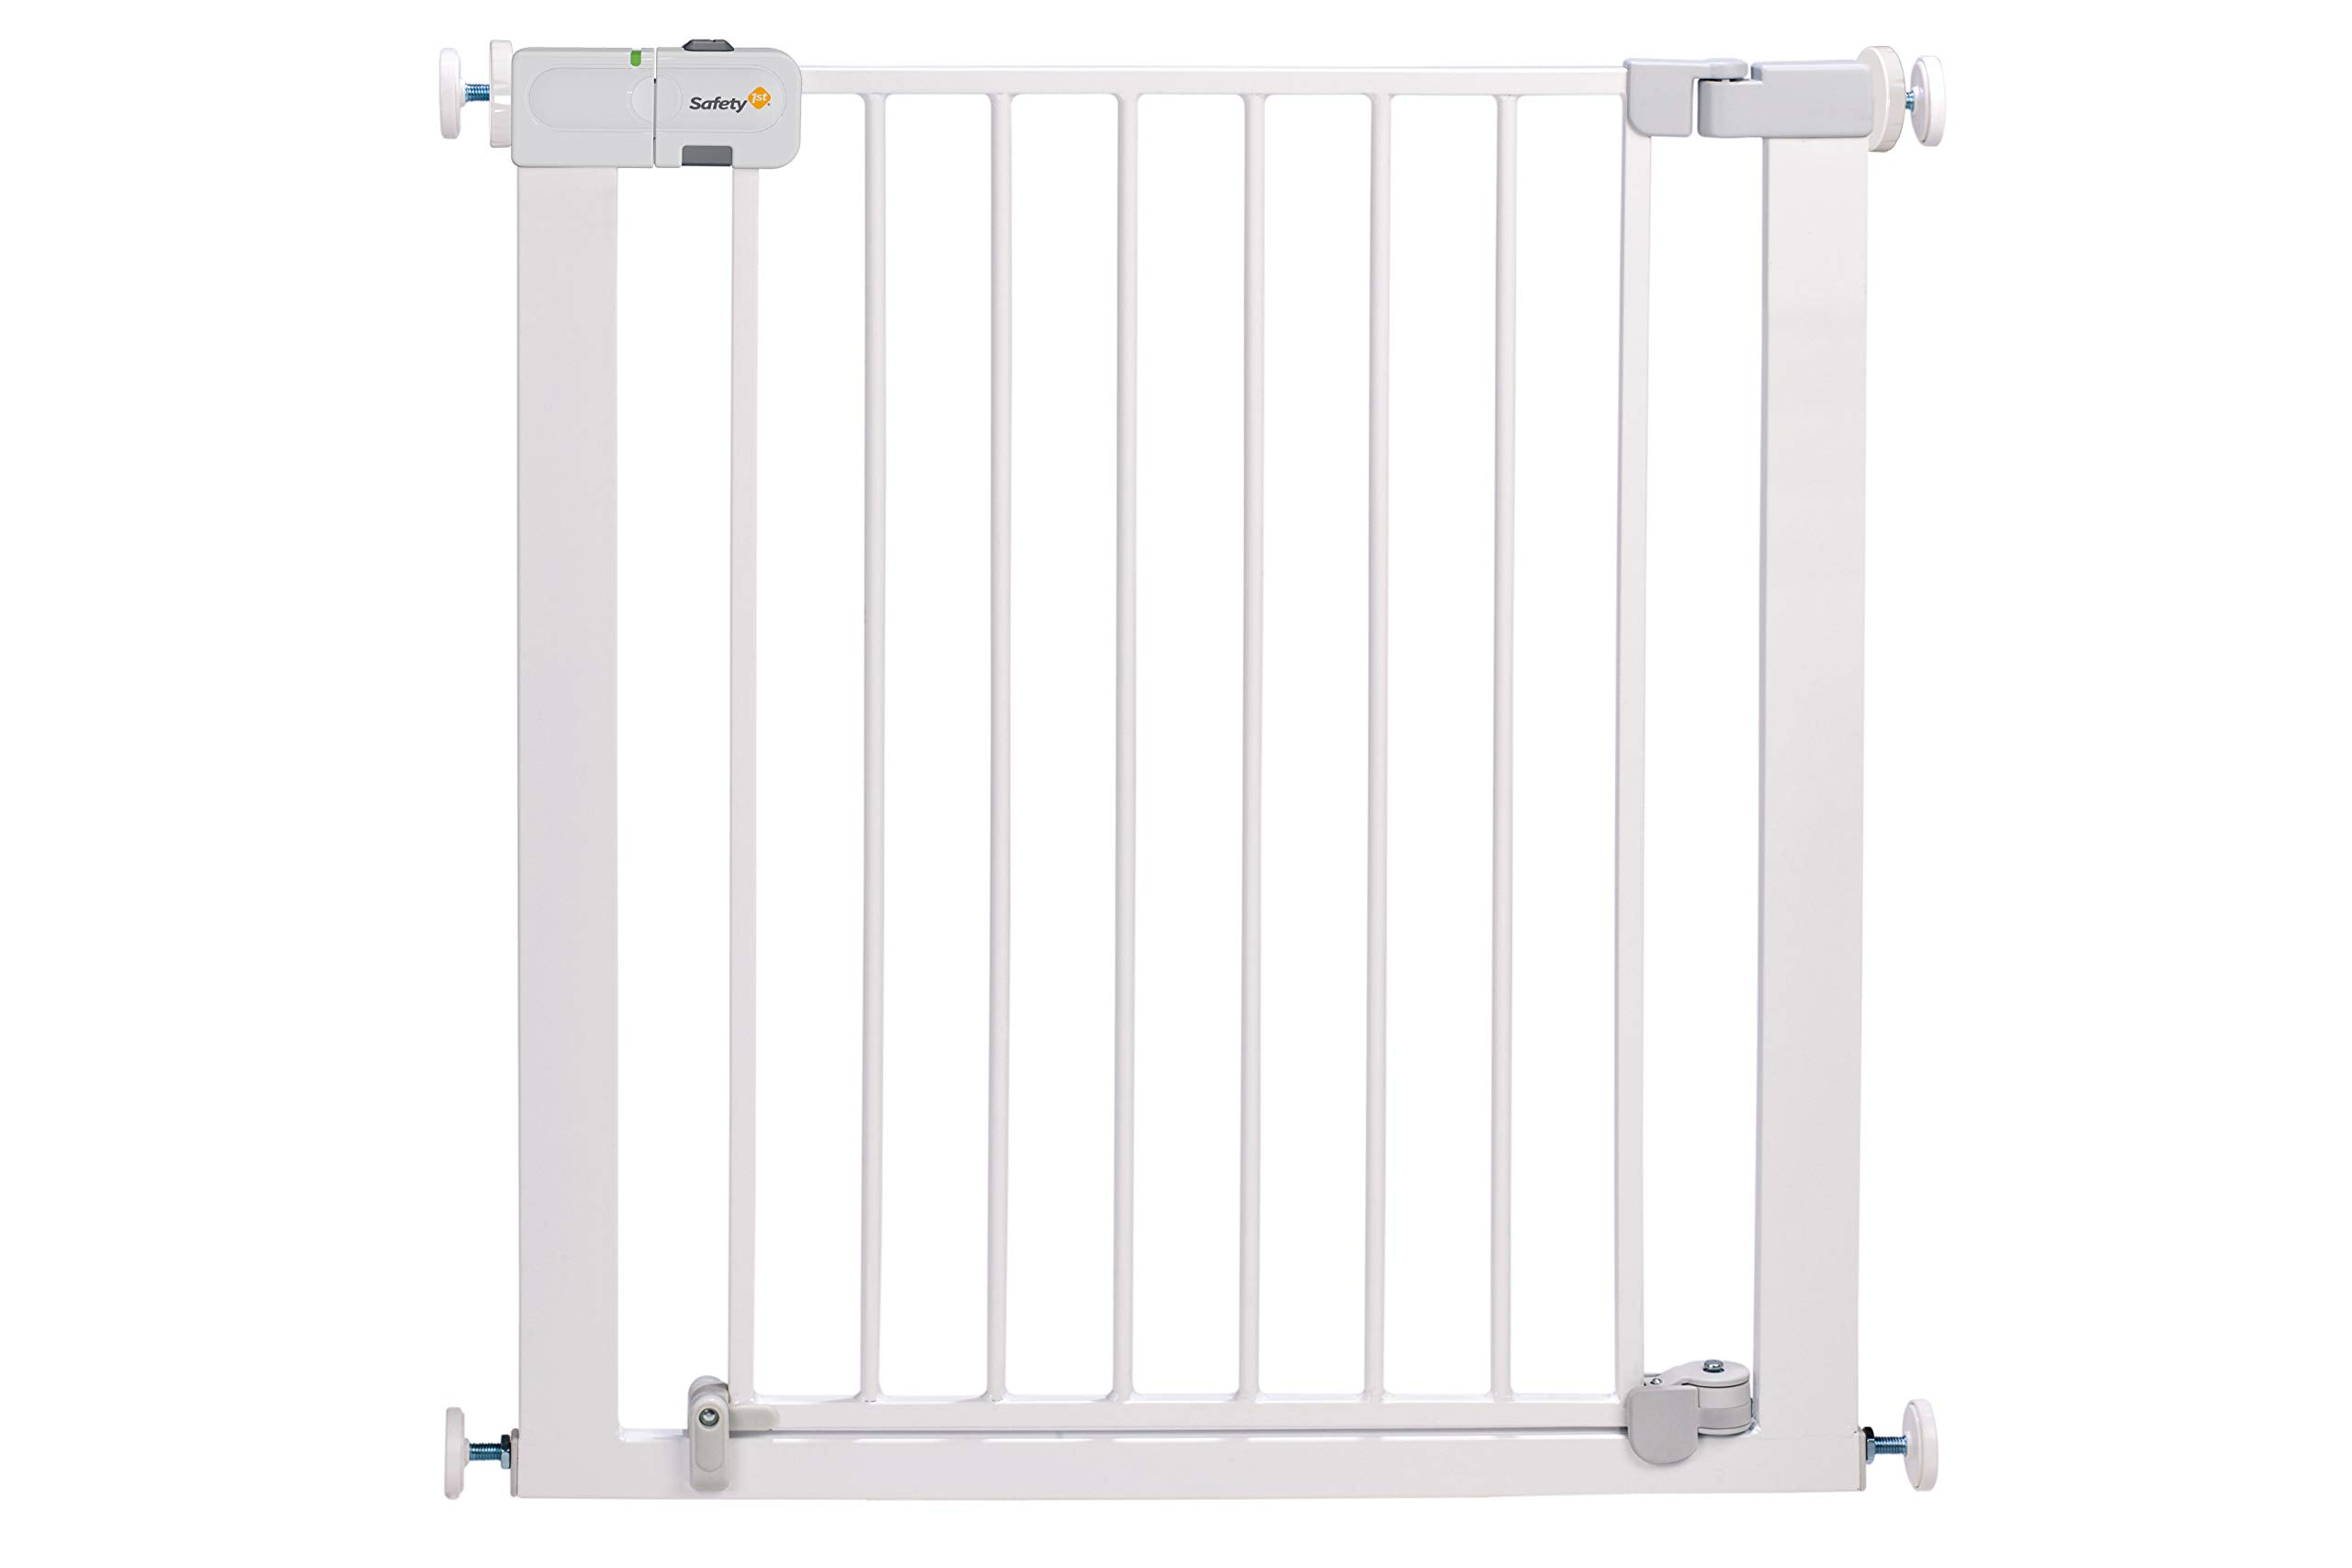 """Safety 1st Secure Tech Auto Close Metal Gate, White Safety 1st One handed opening """"true"""" auto-closing whatever the opening amplitude U-shaped frame with 4 pressure points provides solid fit and doesn't require drilling Secure tech indicator shows the gate is safely locked into place 3"""